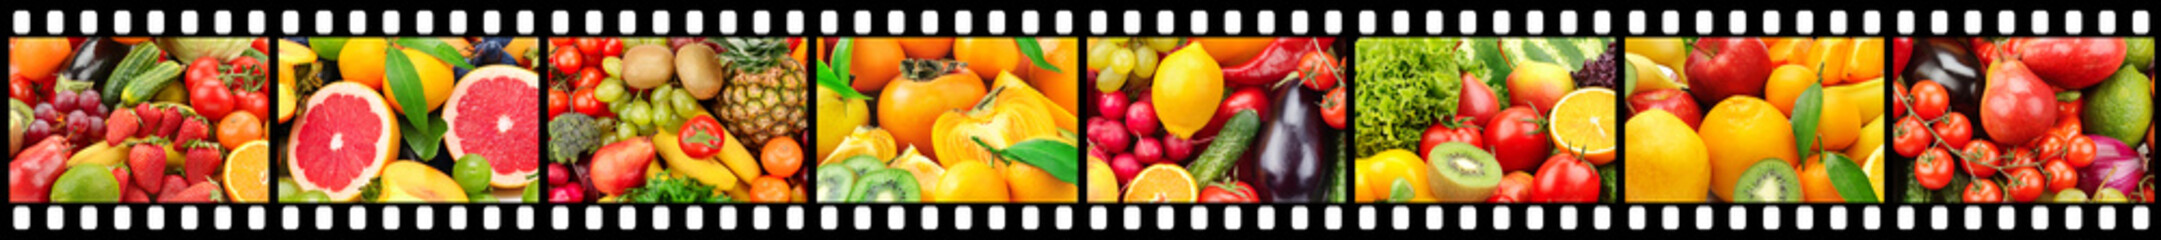 Wide frame in form of film strip with fruits and vegetables.